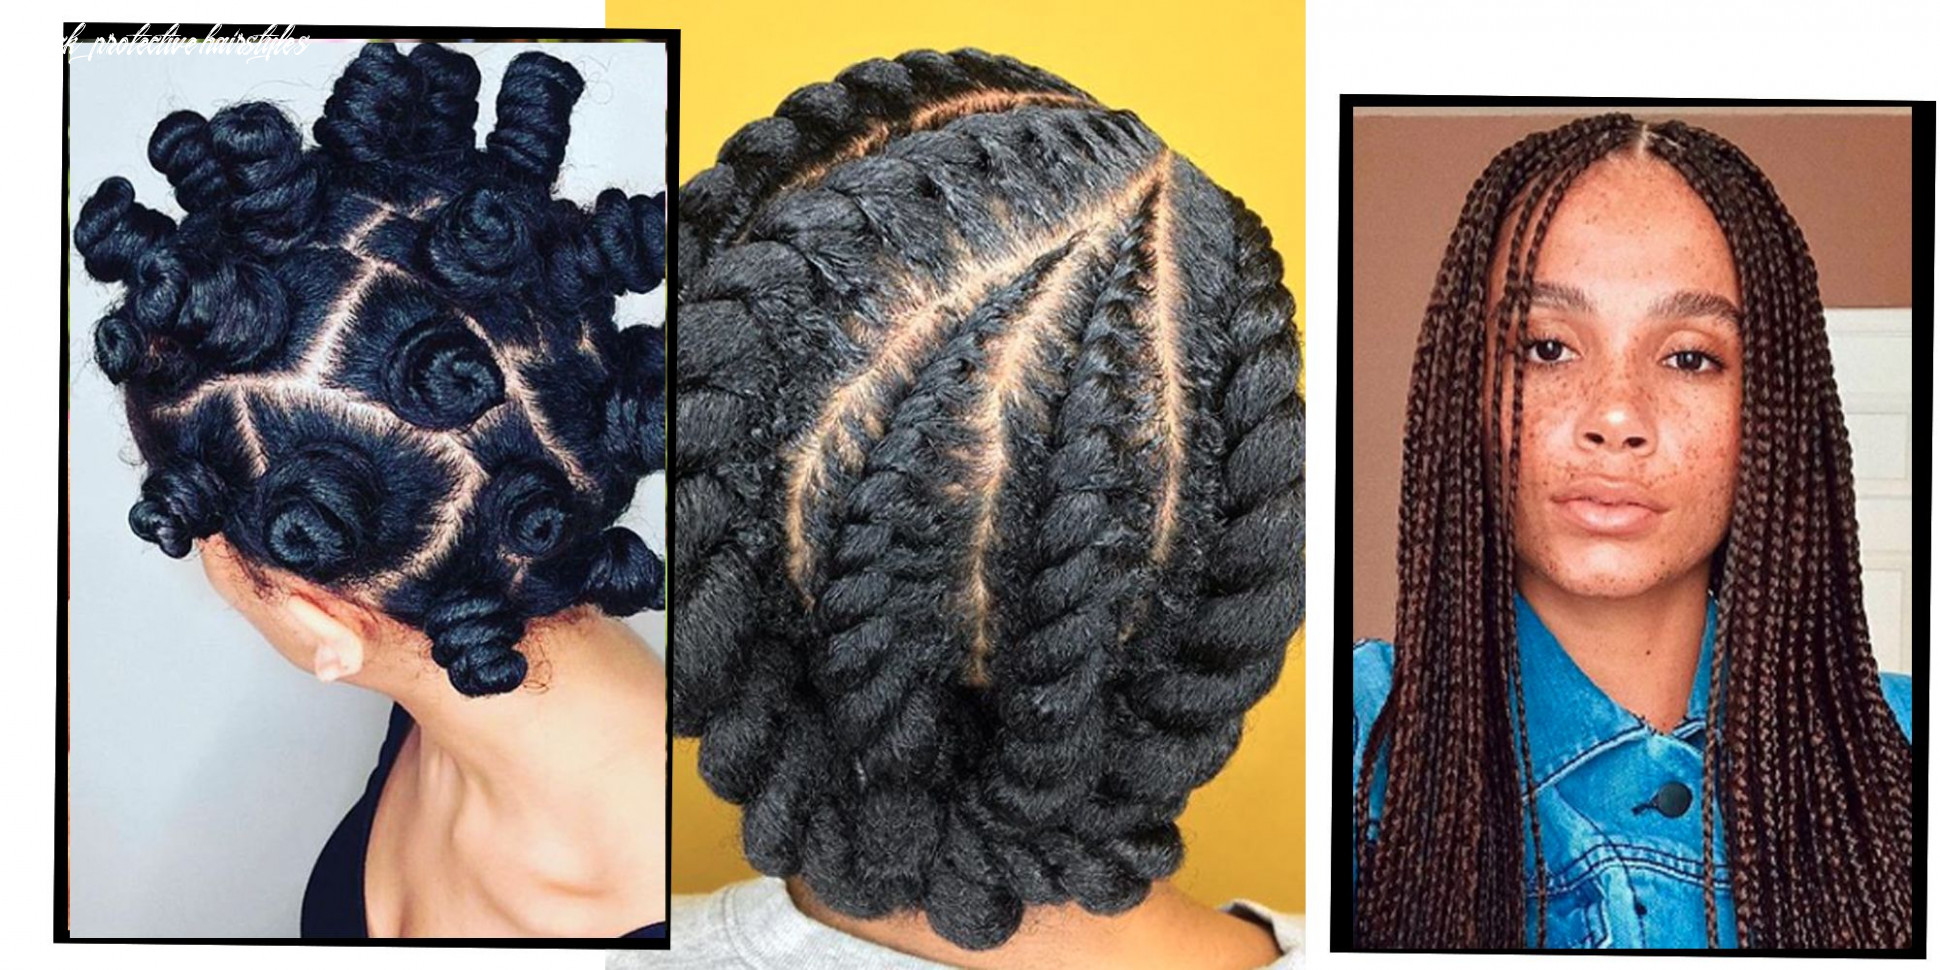 The black beauty guide: 11 next level protective hairstyles keeping